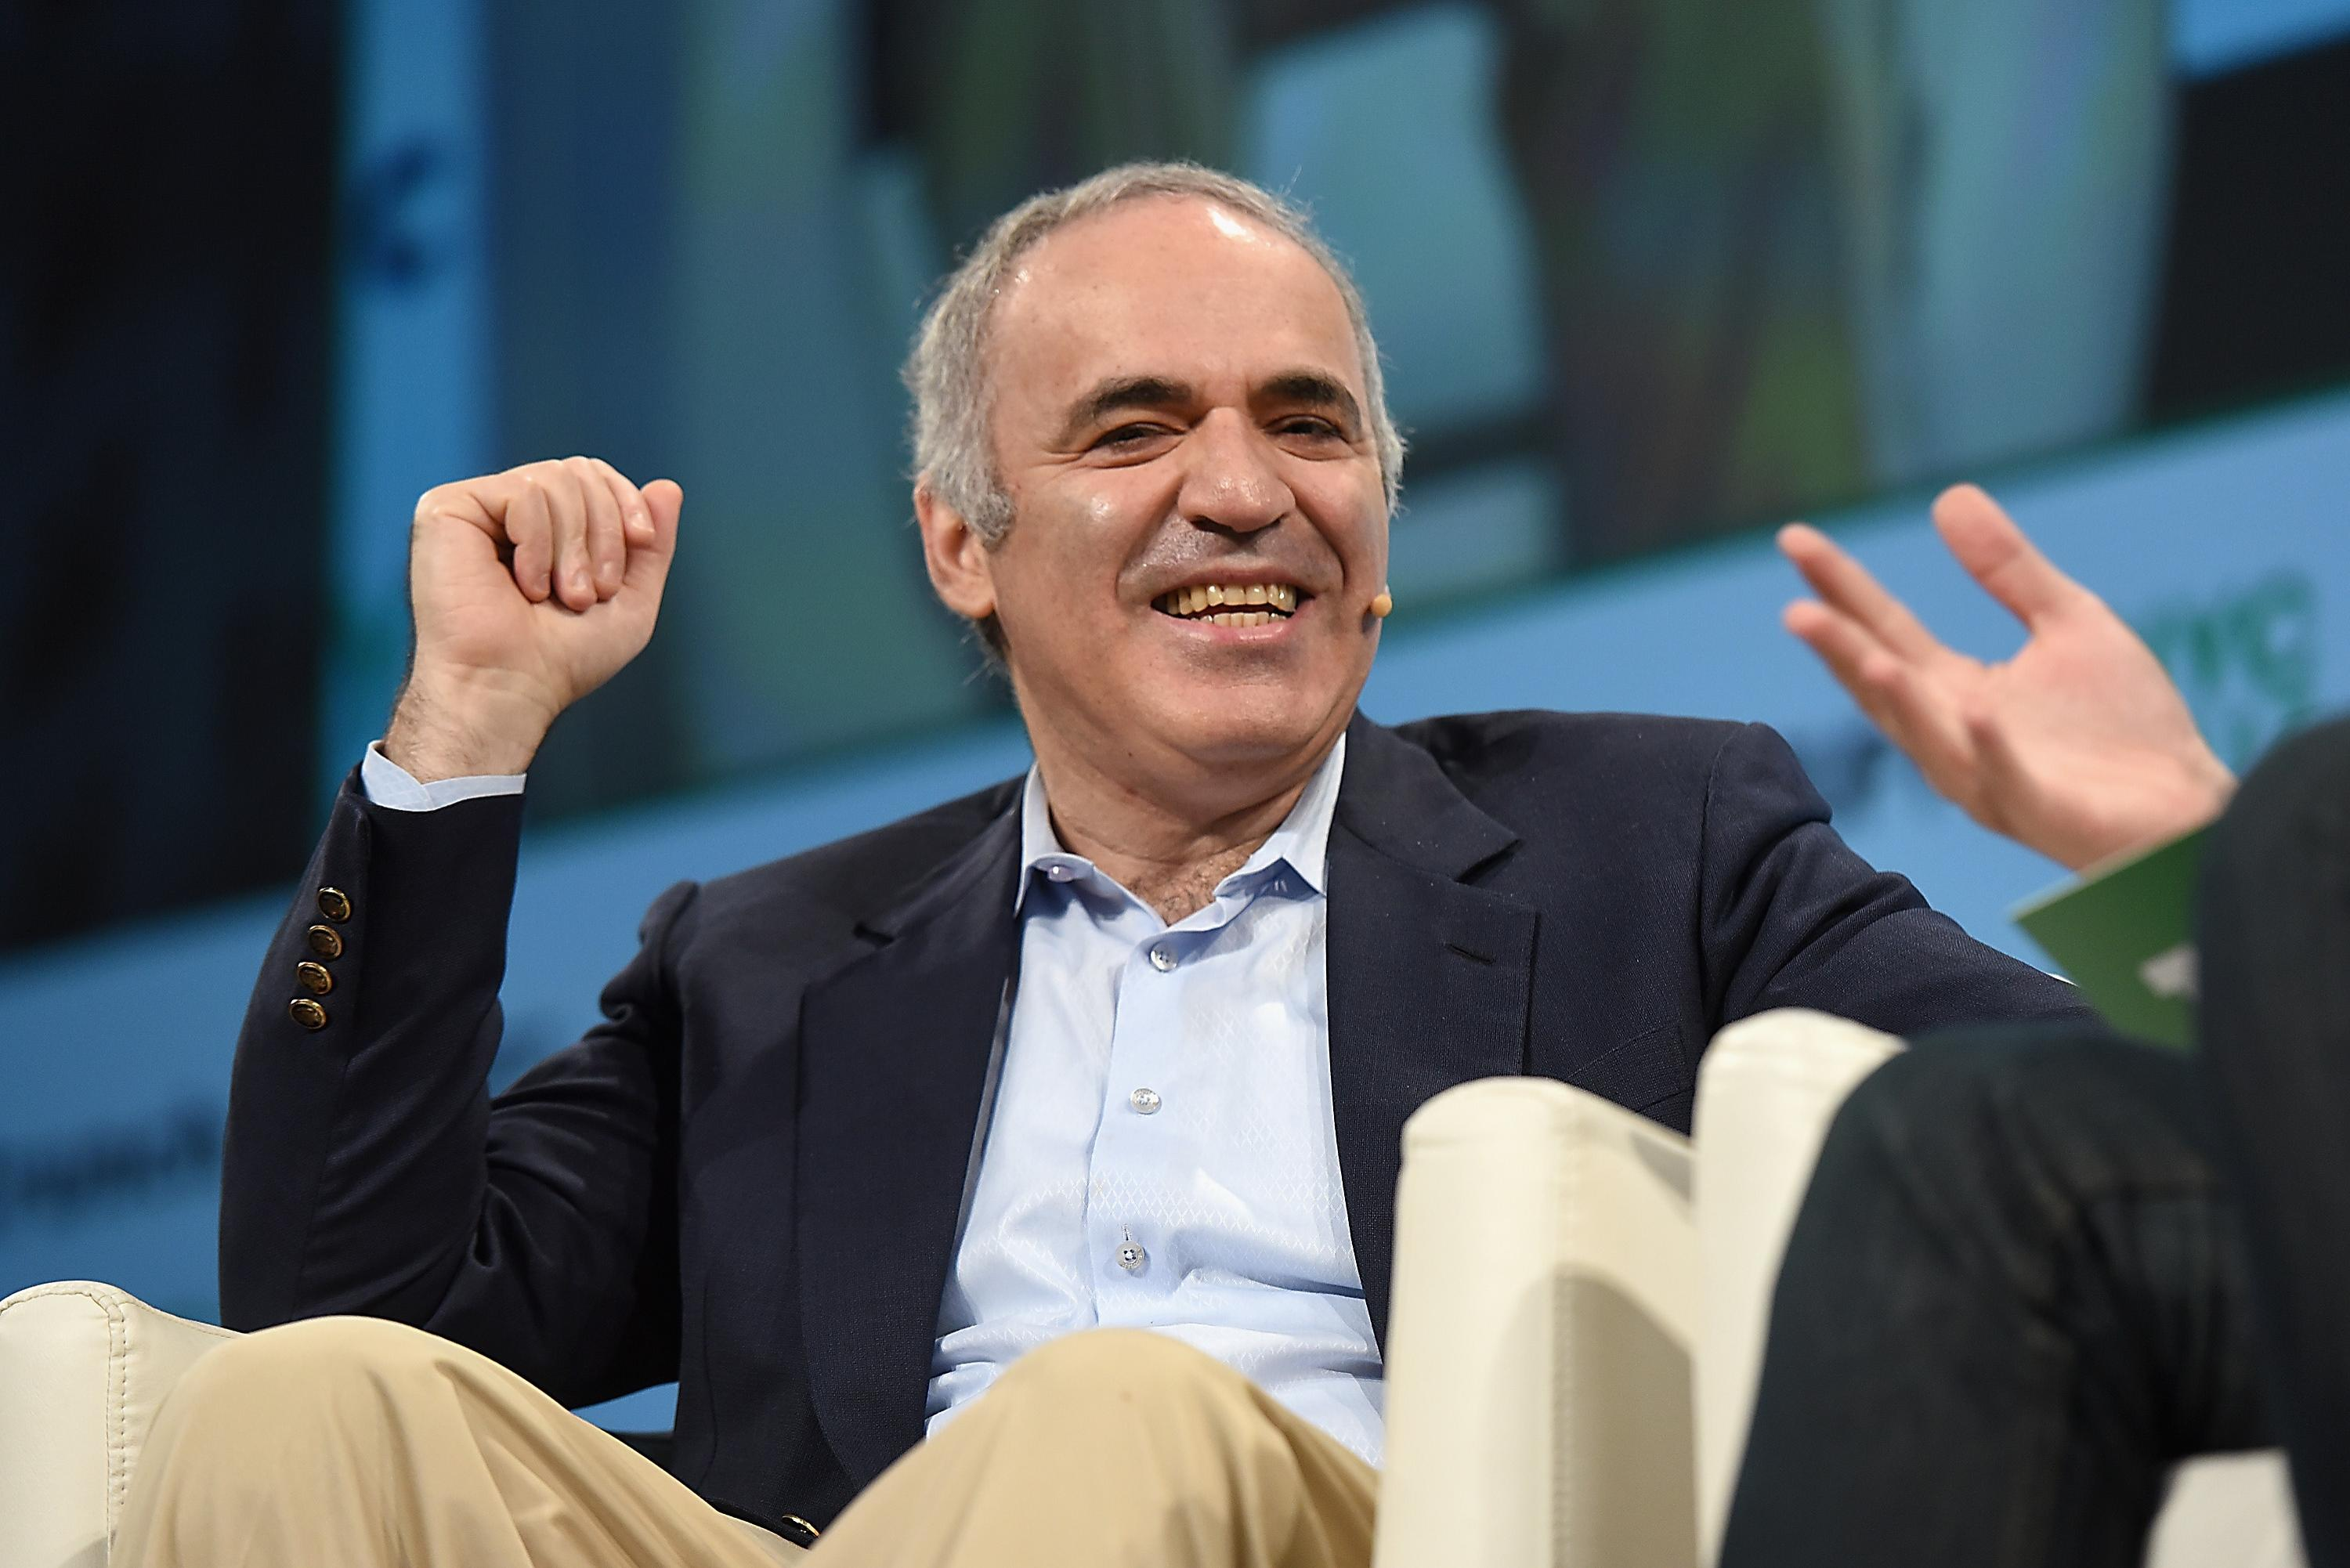 Garry Kasparov: I told you Putin would attack U.S. election — and he will again